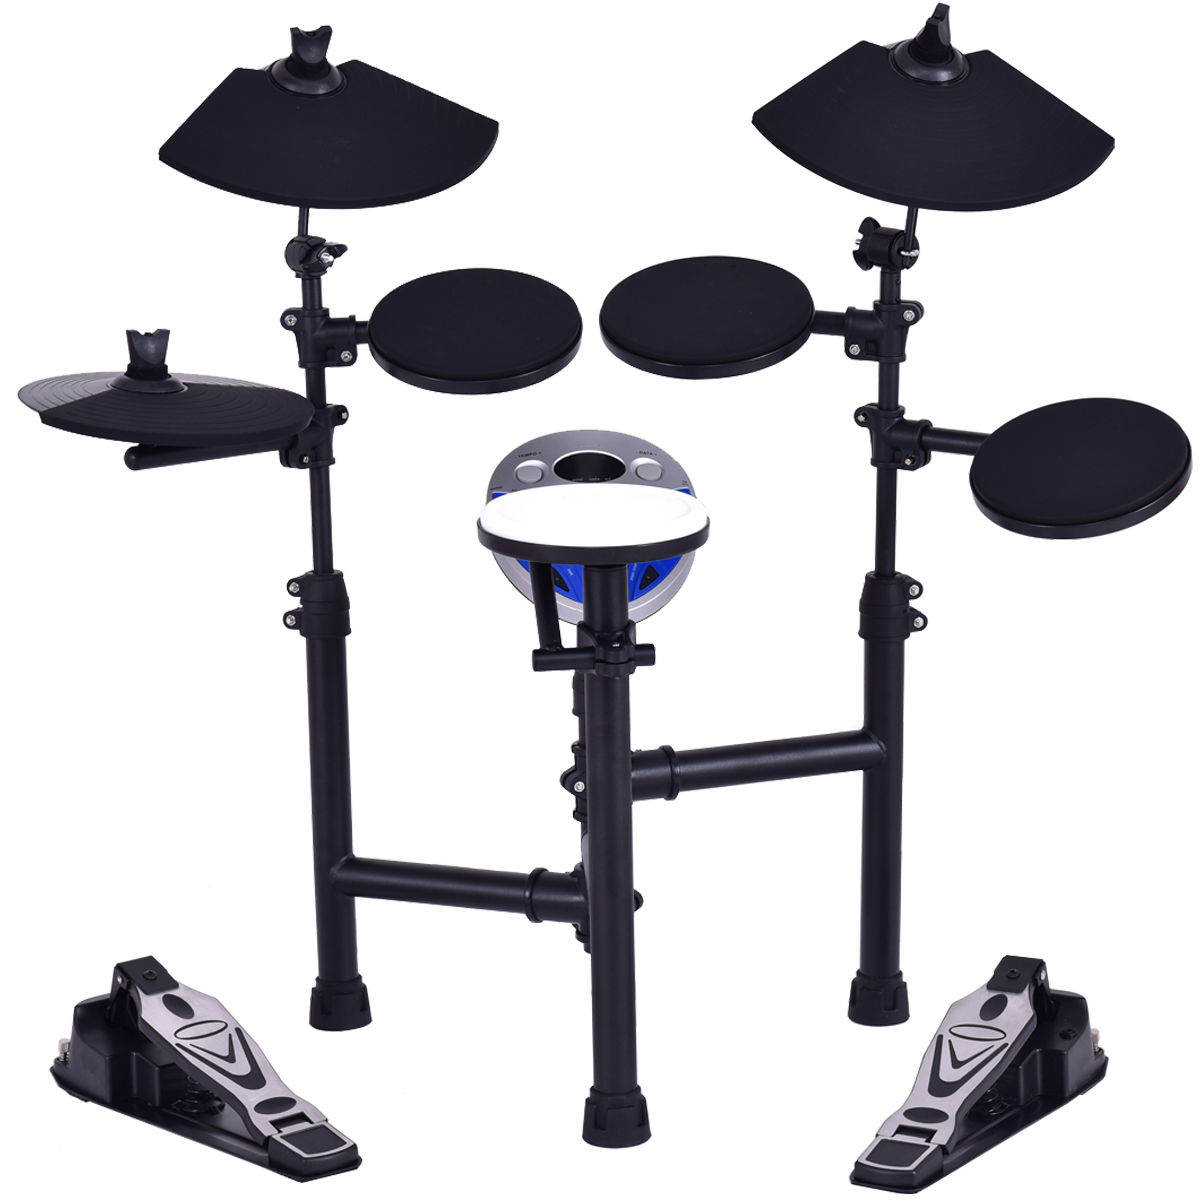 Gymax Electronic Drum Set Kit w  7.5'' Snare+ 7.5'' Toms+ 10'' Cymbal+ Drum Sticks by Gymax